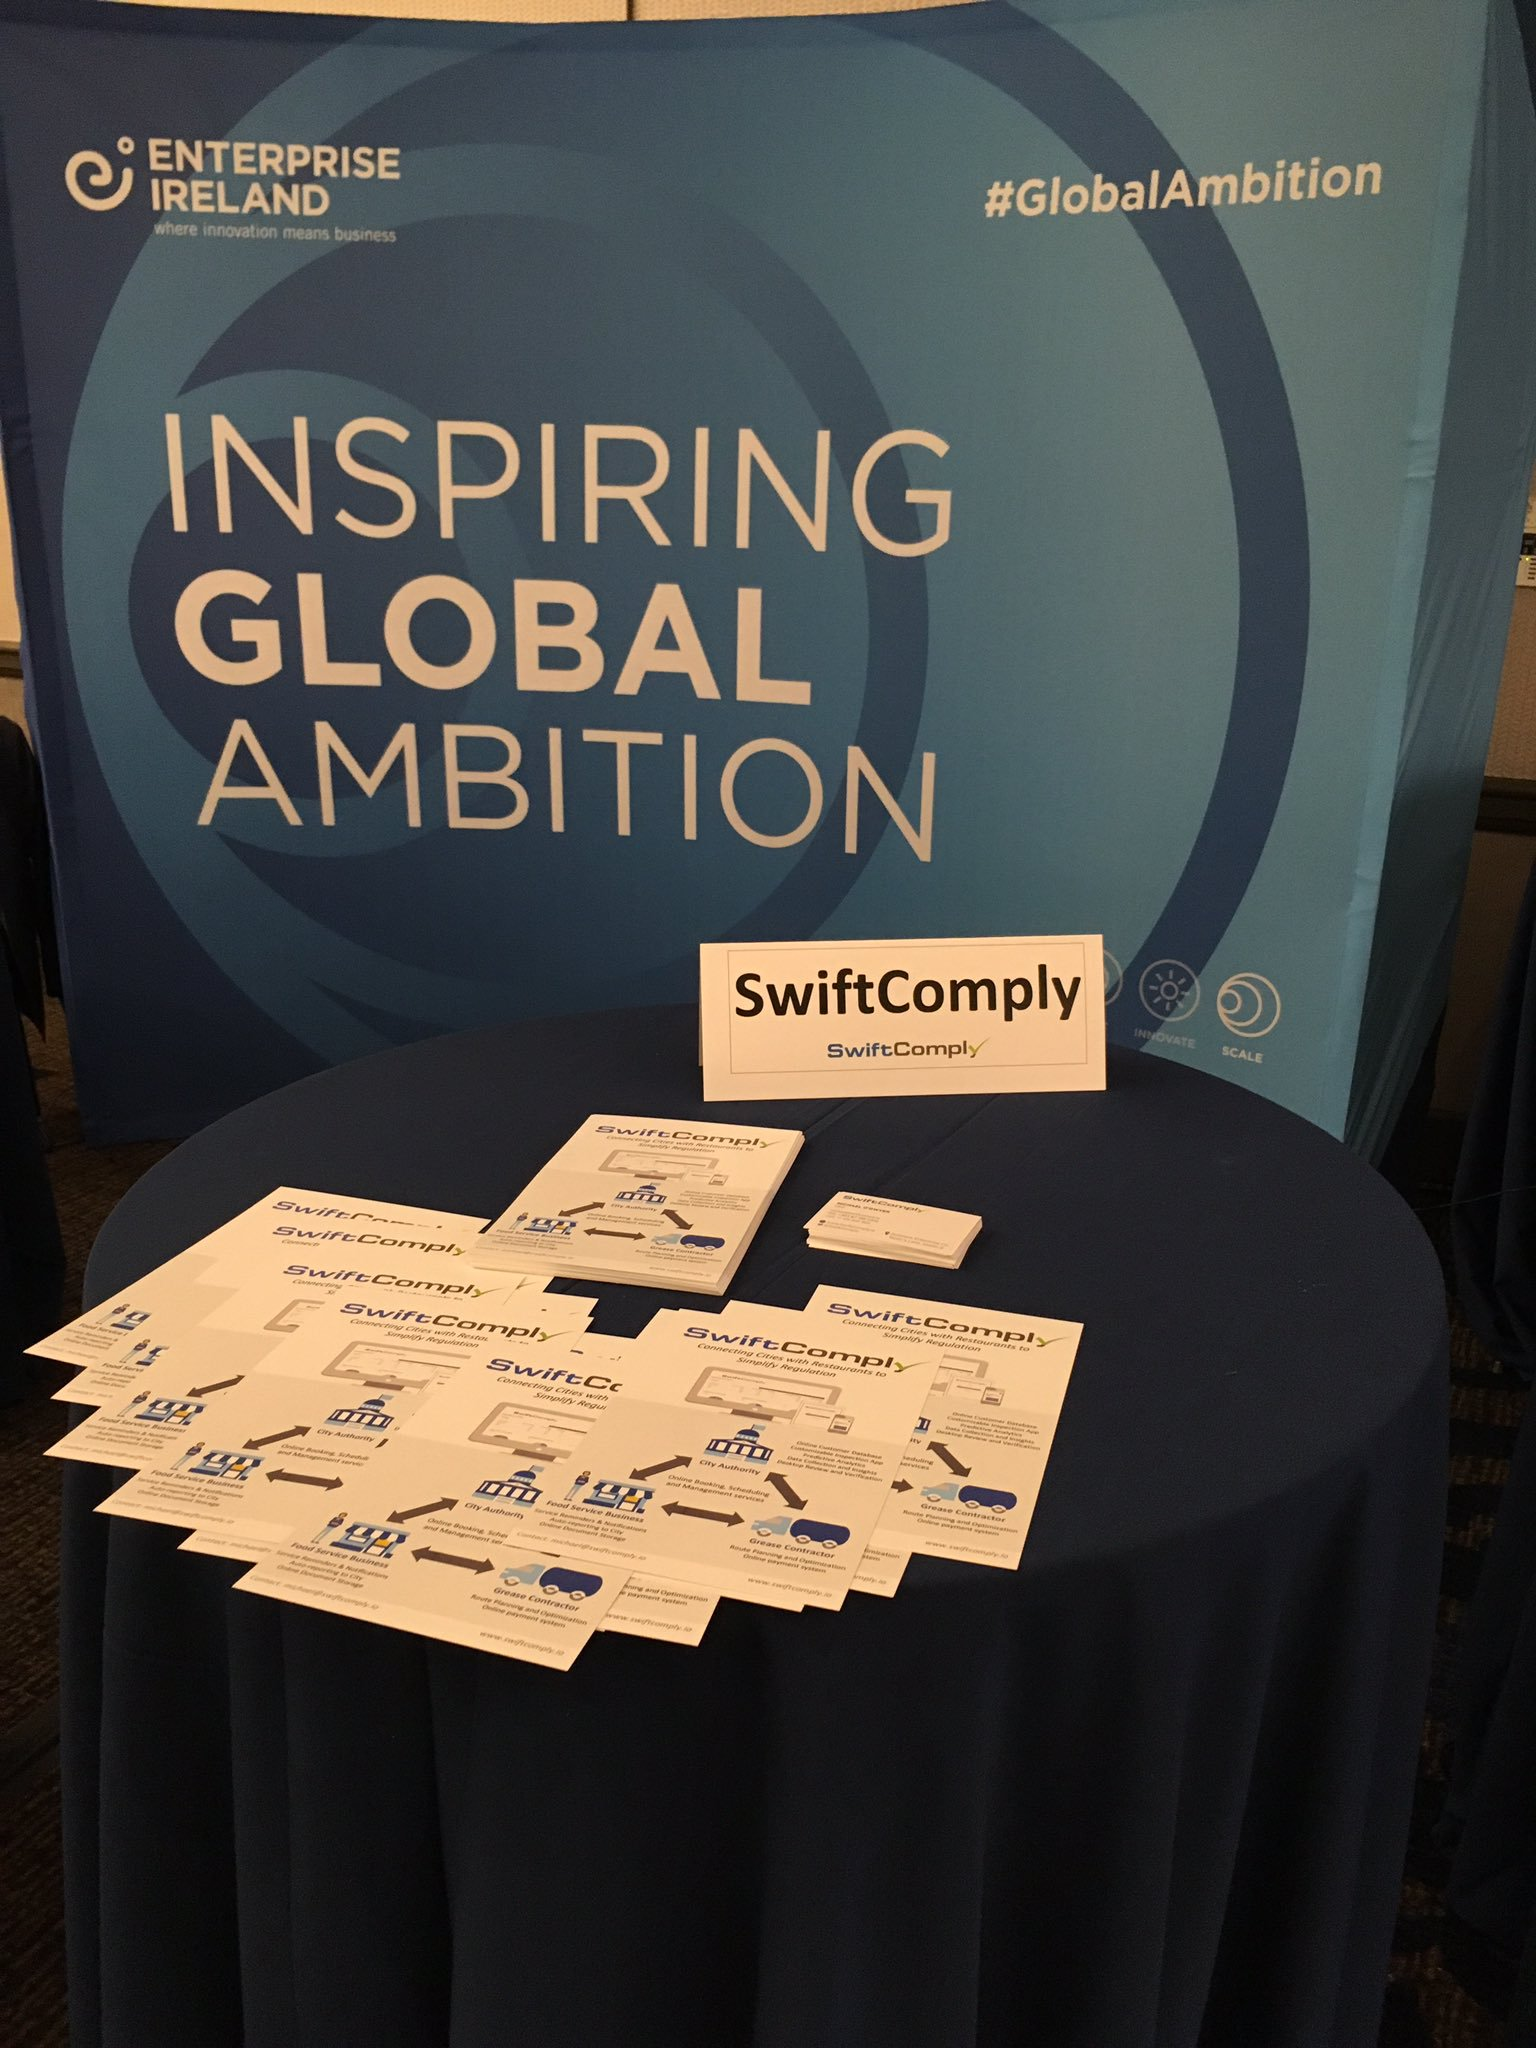 Swiftcomply – Simplifying environmental compliance for more sustainable communities